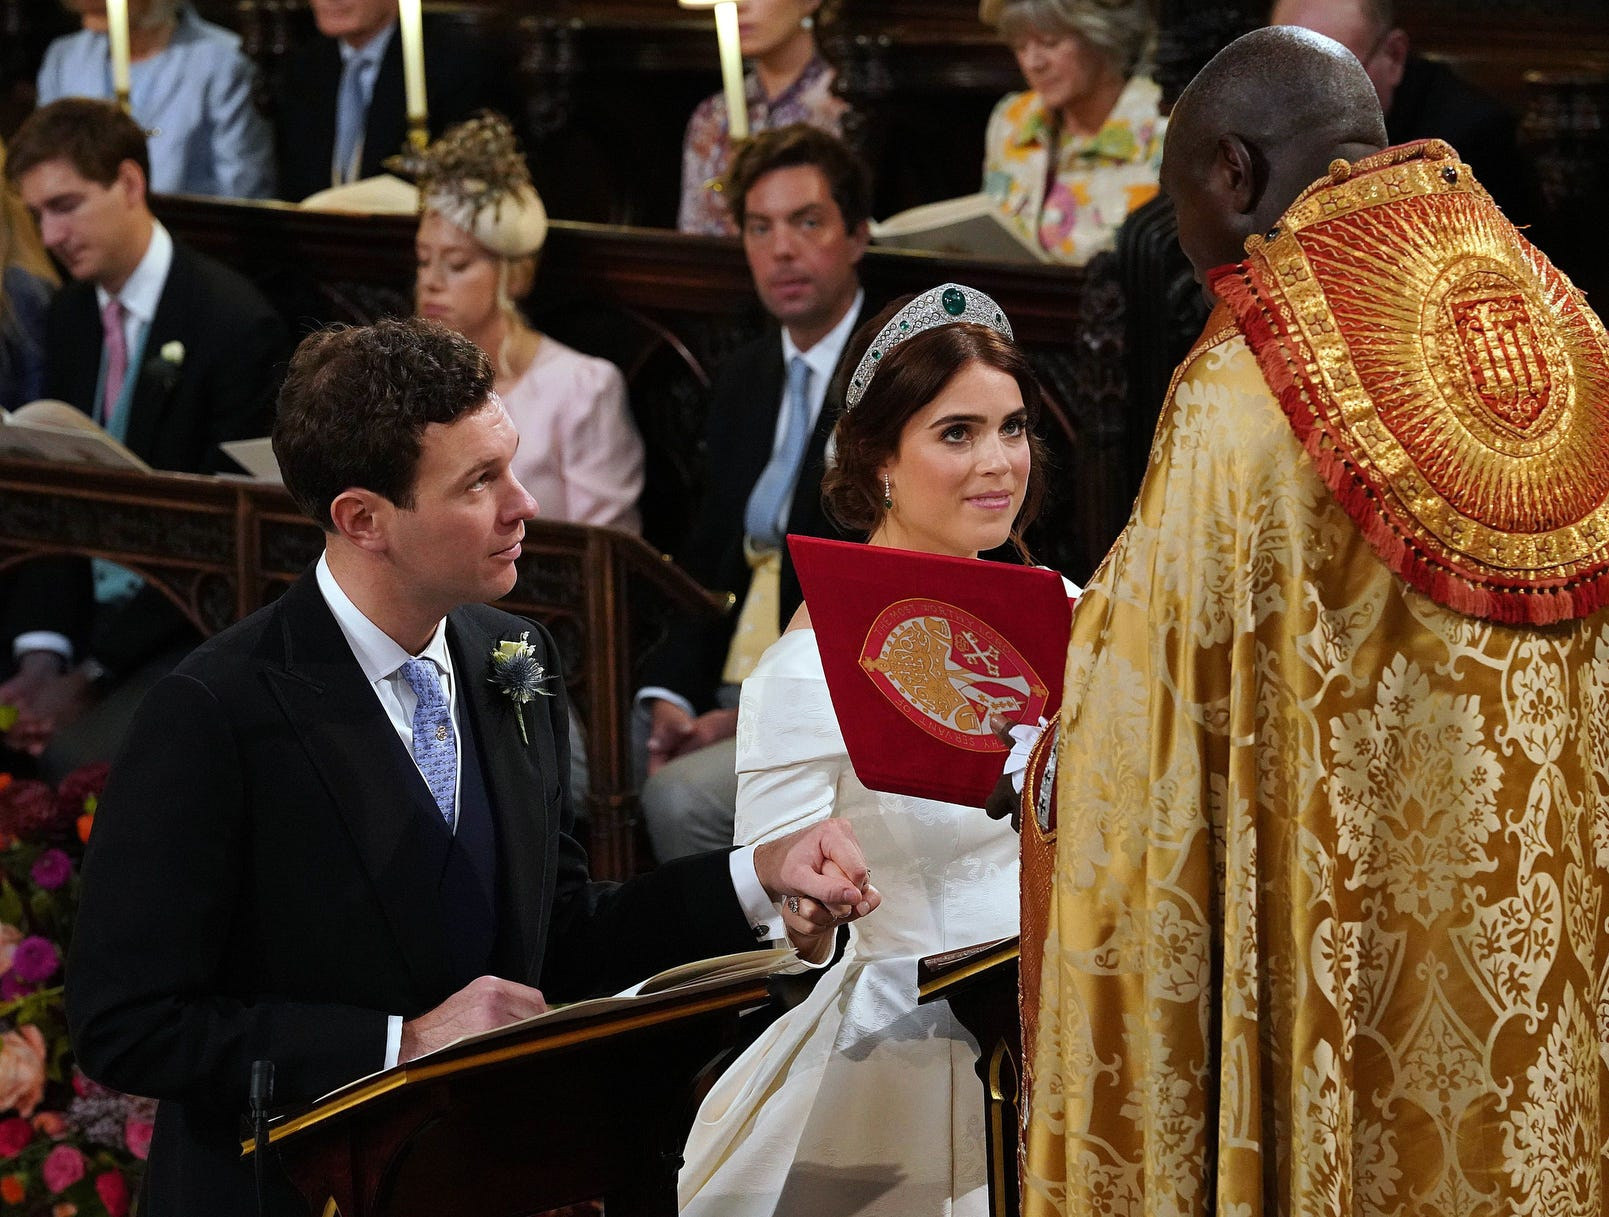 Britain's Princess Eugenie of York and Jack Brooksbank kneel at the altar during their wedding ceremony at St George's Chapel.